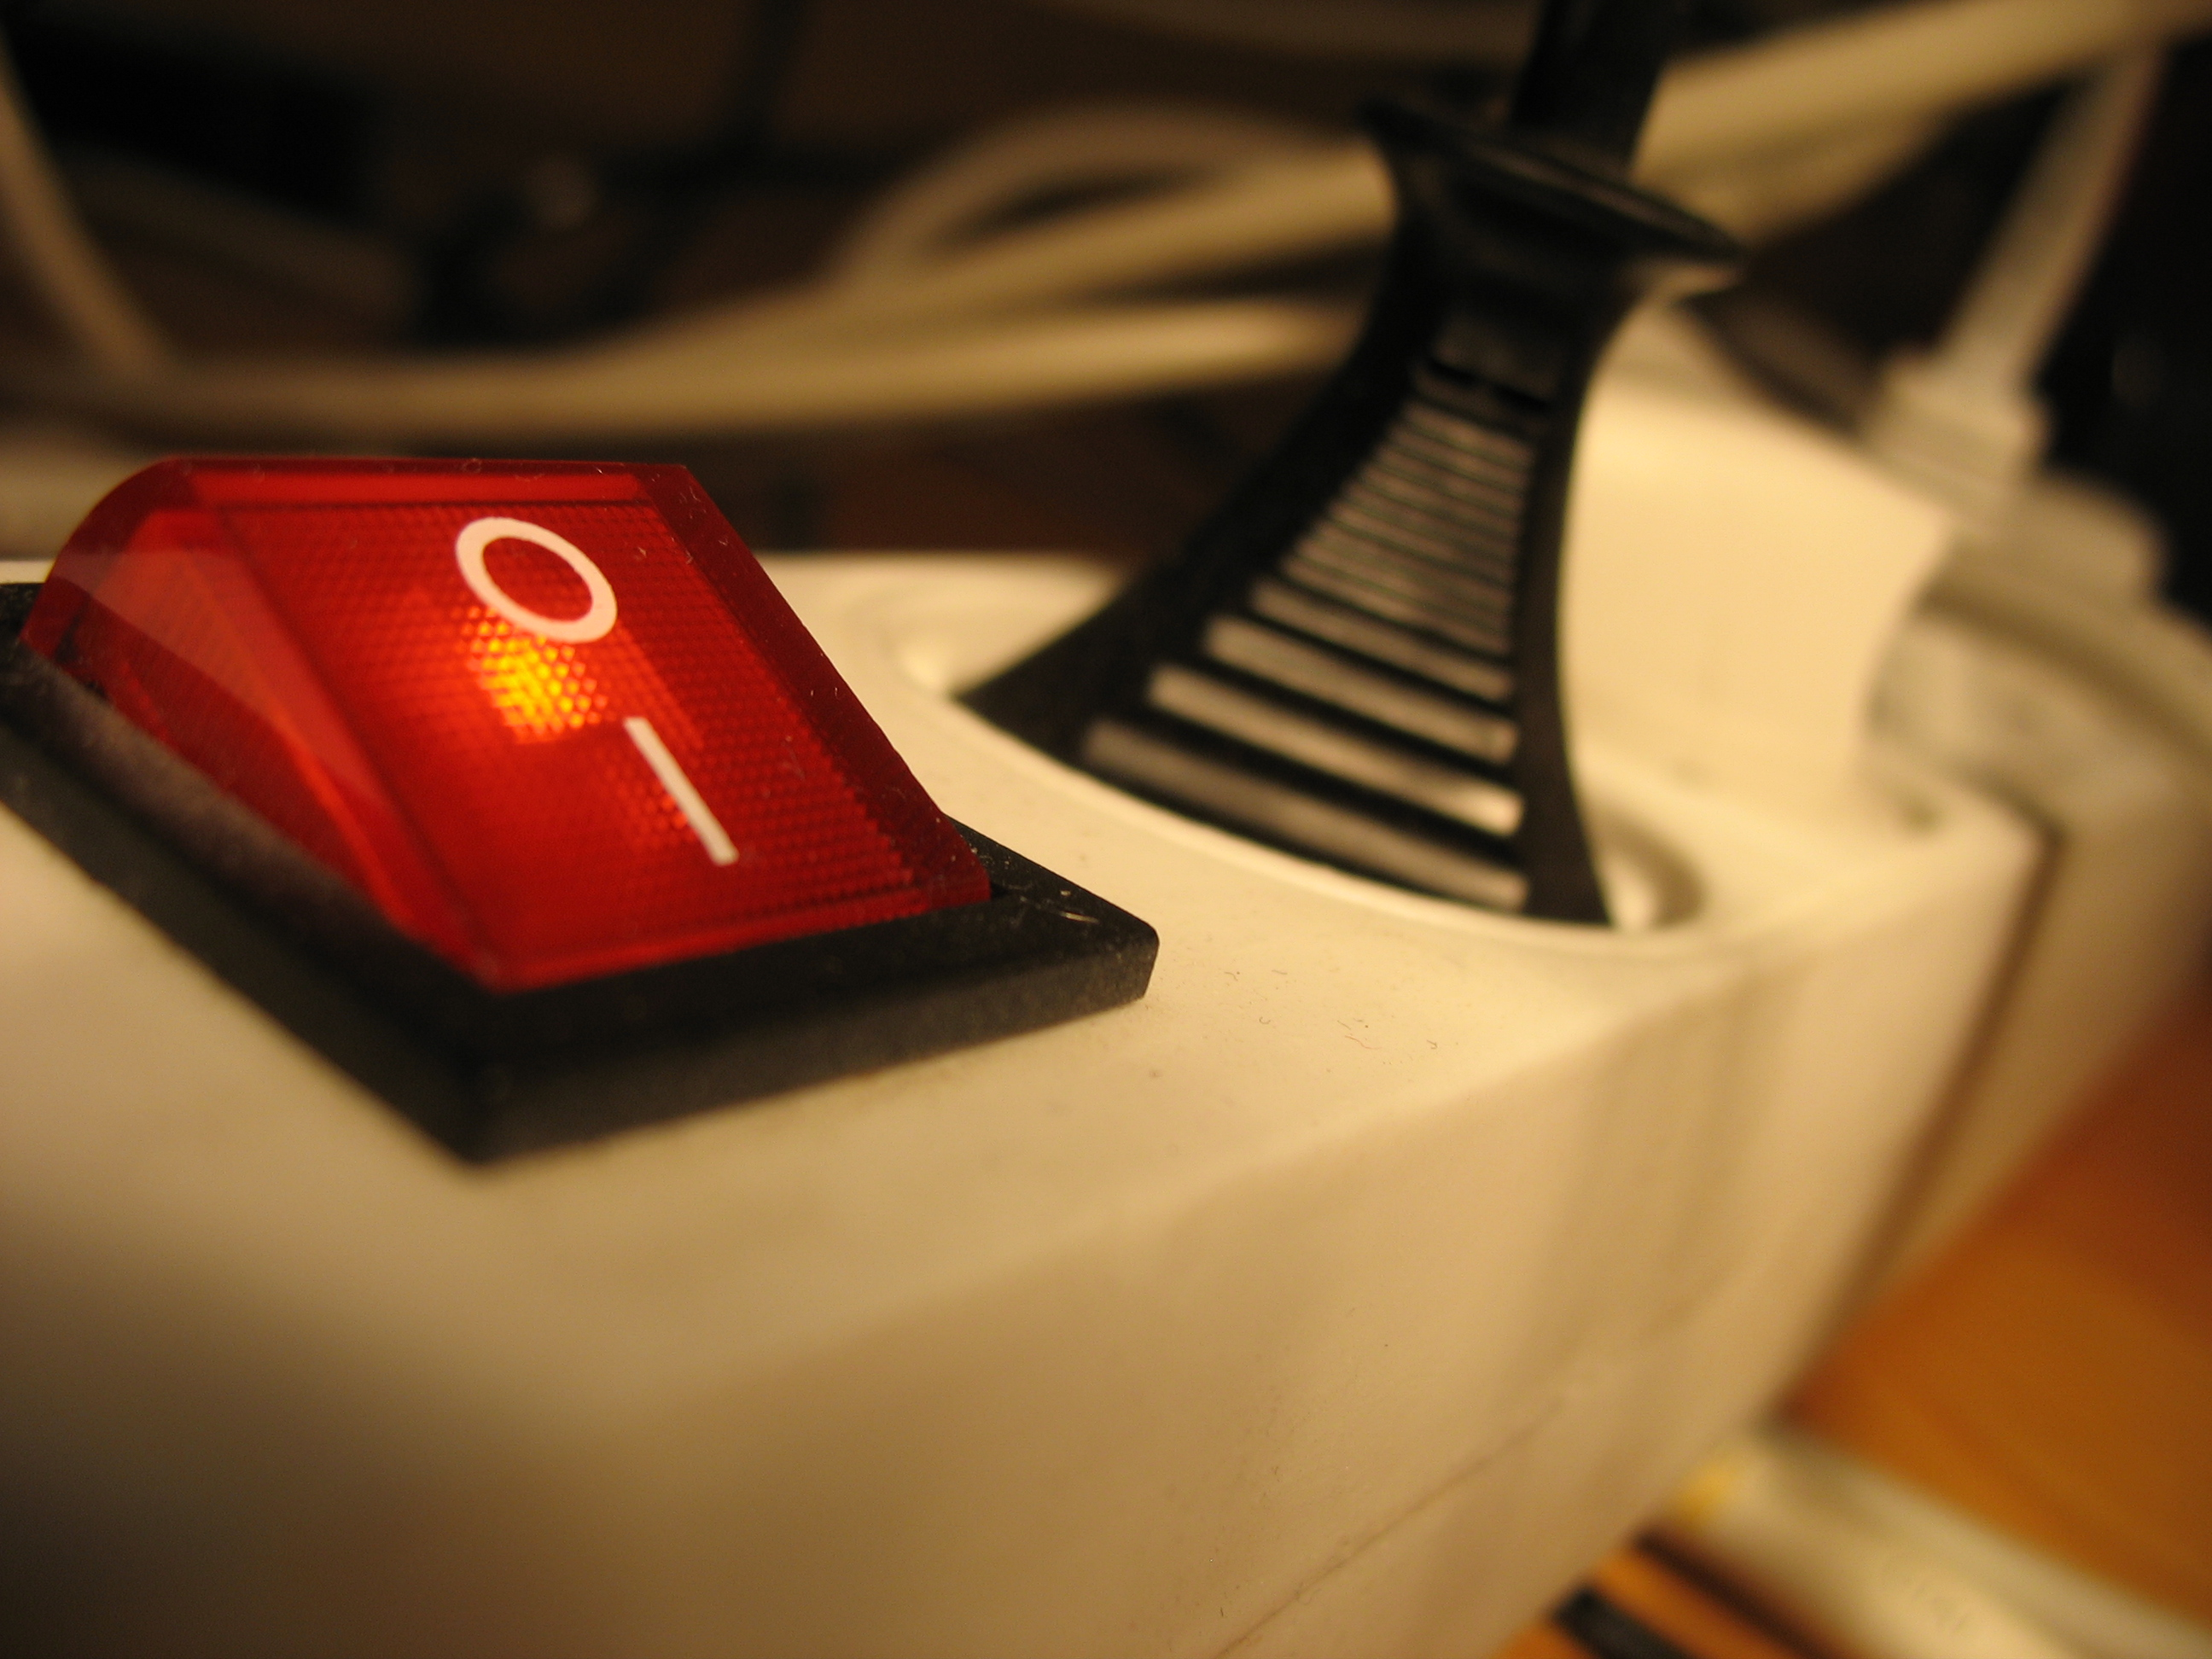 An energy efficient power bar makes it easy to turn on and off groups of electronics.